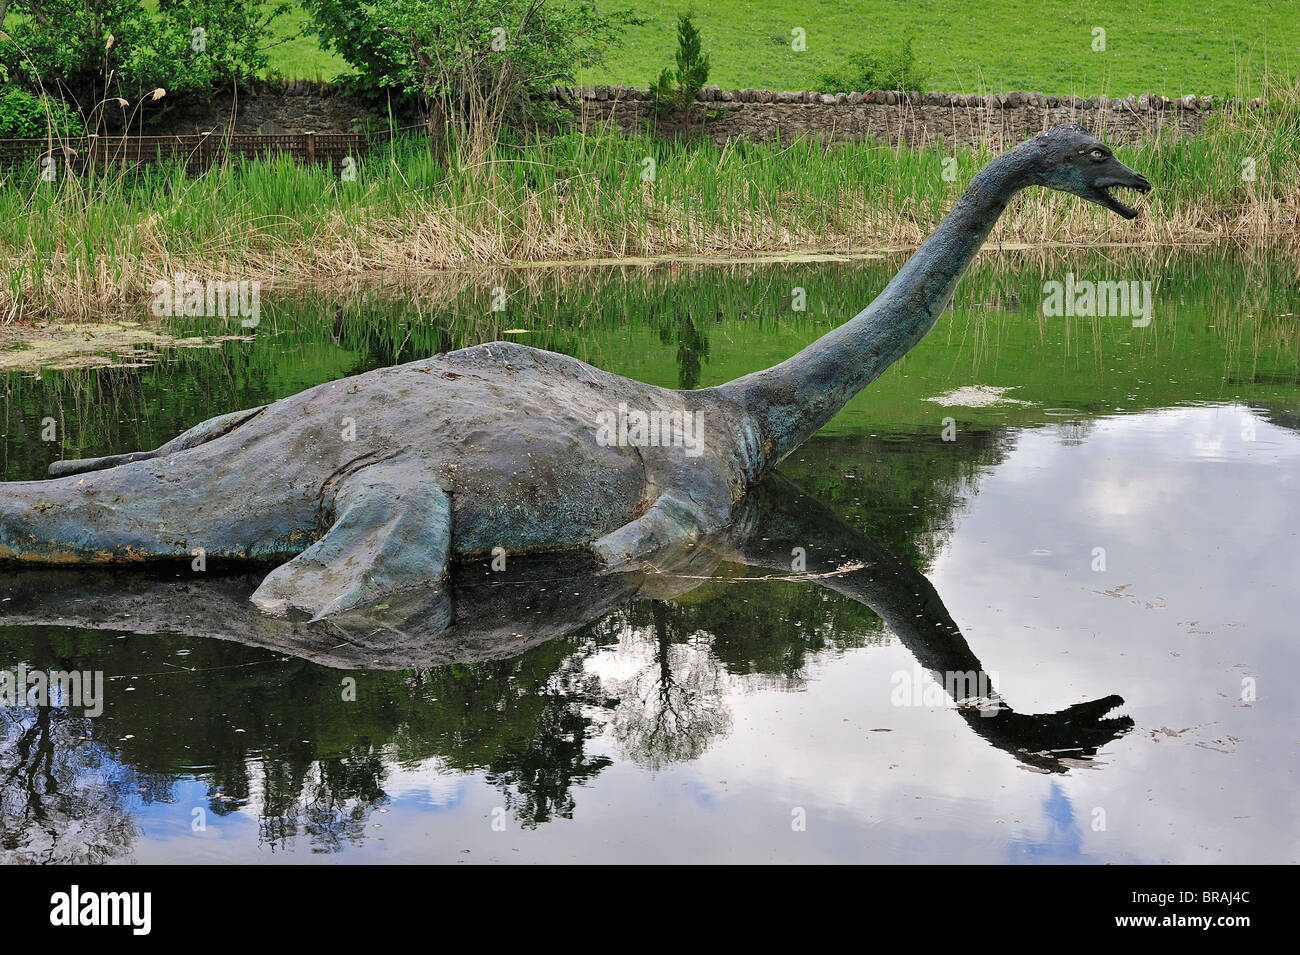 Where does a loch ness monster live